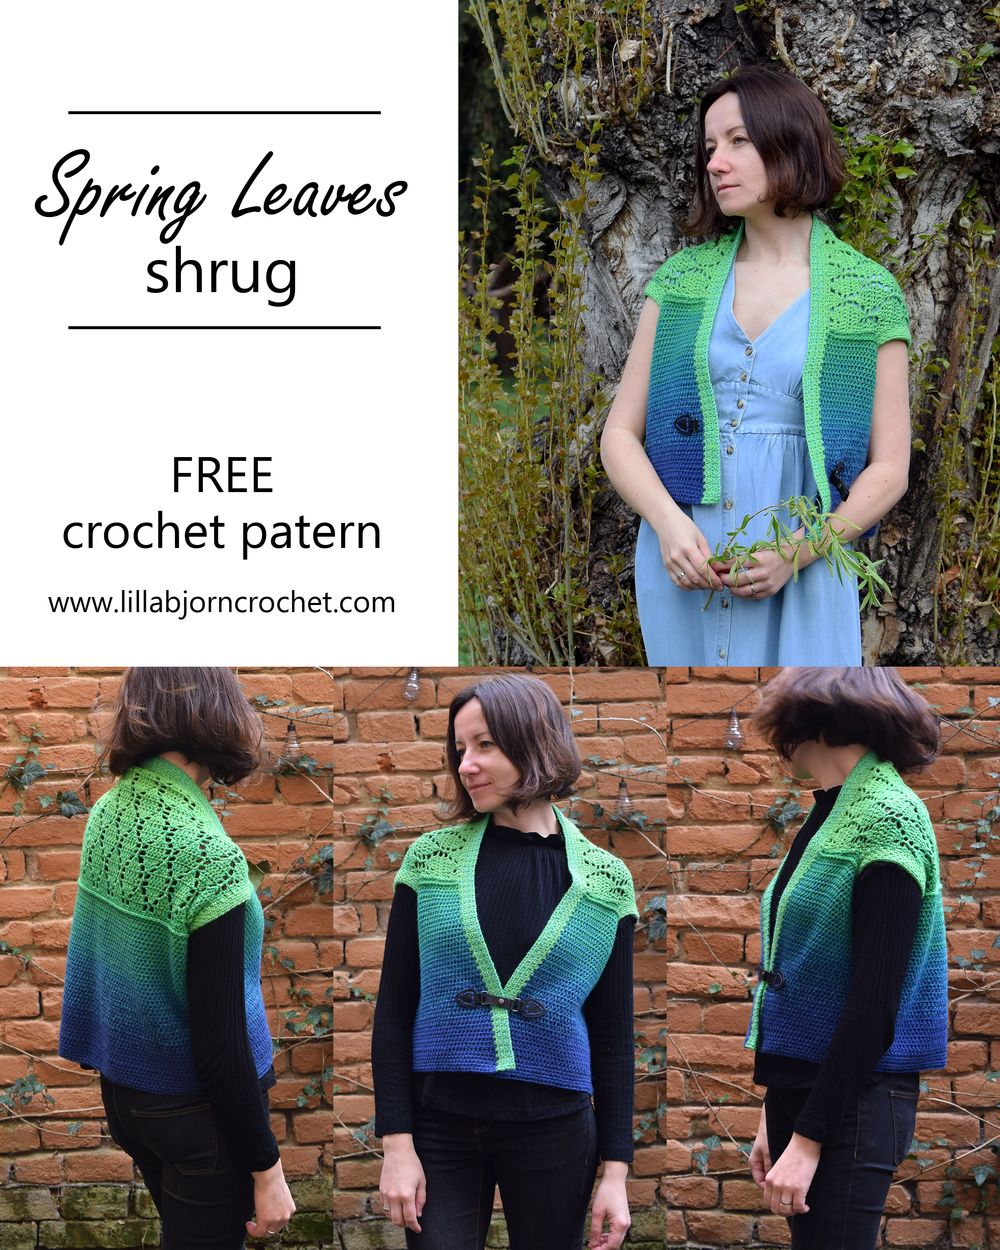 Spring Leaves Shrug_FREE crochet patterns by www.lillabjorncrochet.com